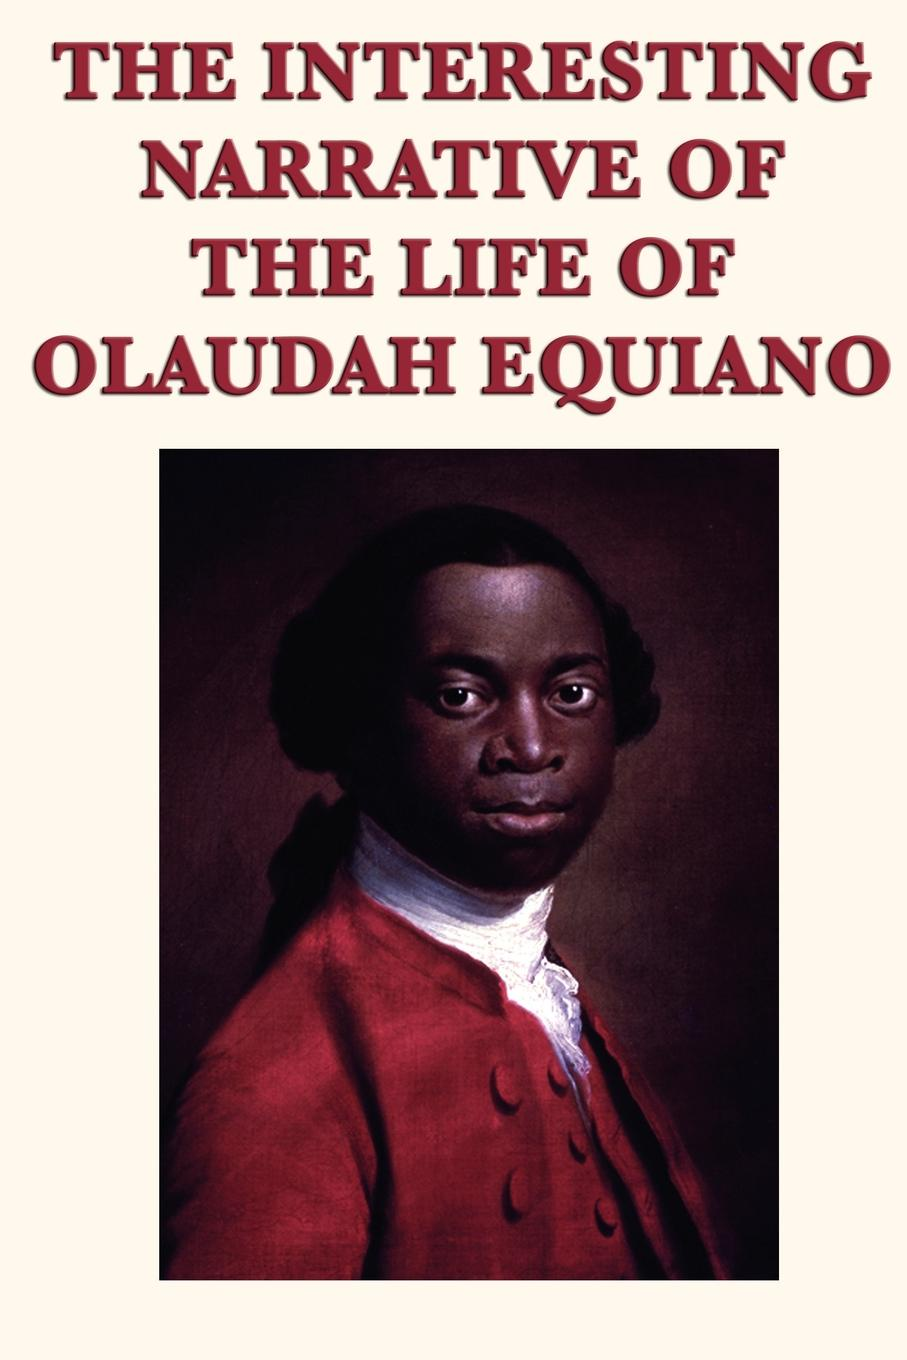 Olaudah Equiano The Interesting Narrative of the Life of Olaudah Equiano charles ball fifty years in chains or the life of an american slave